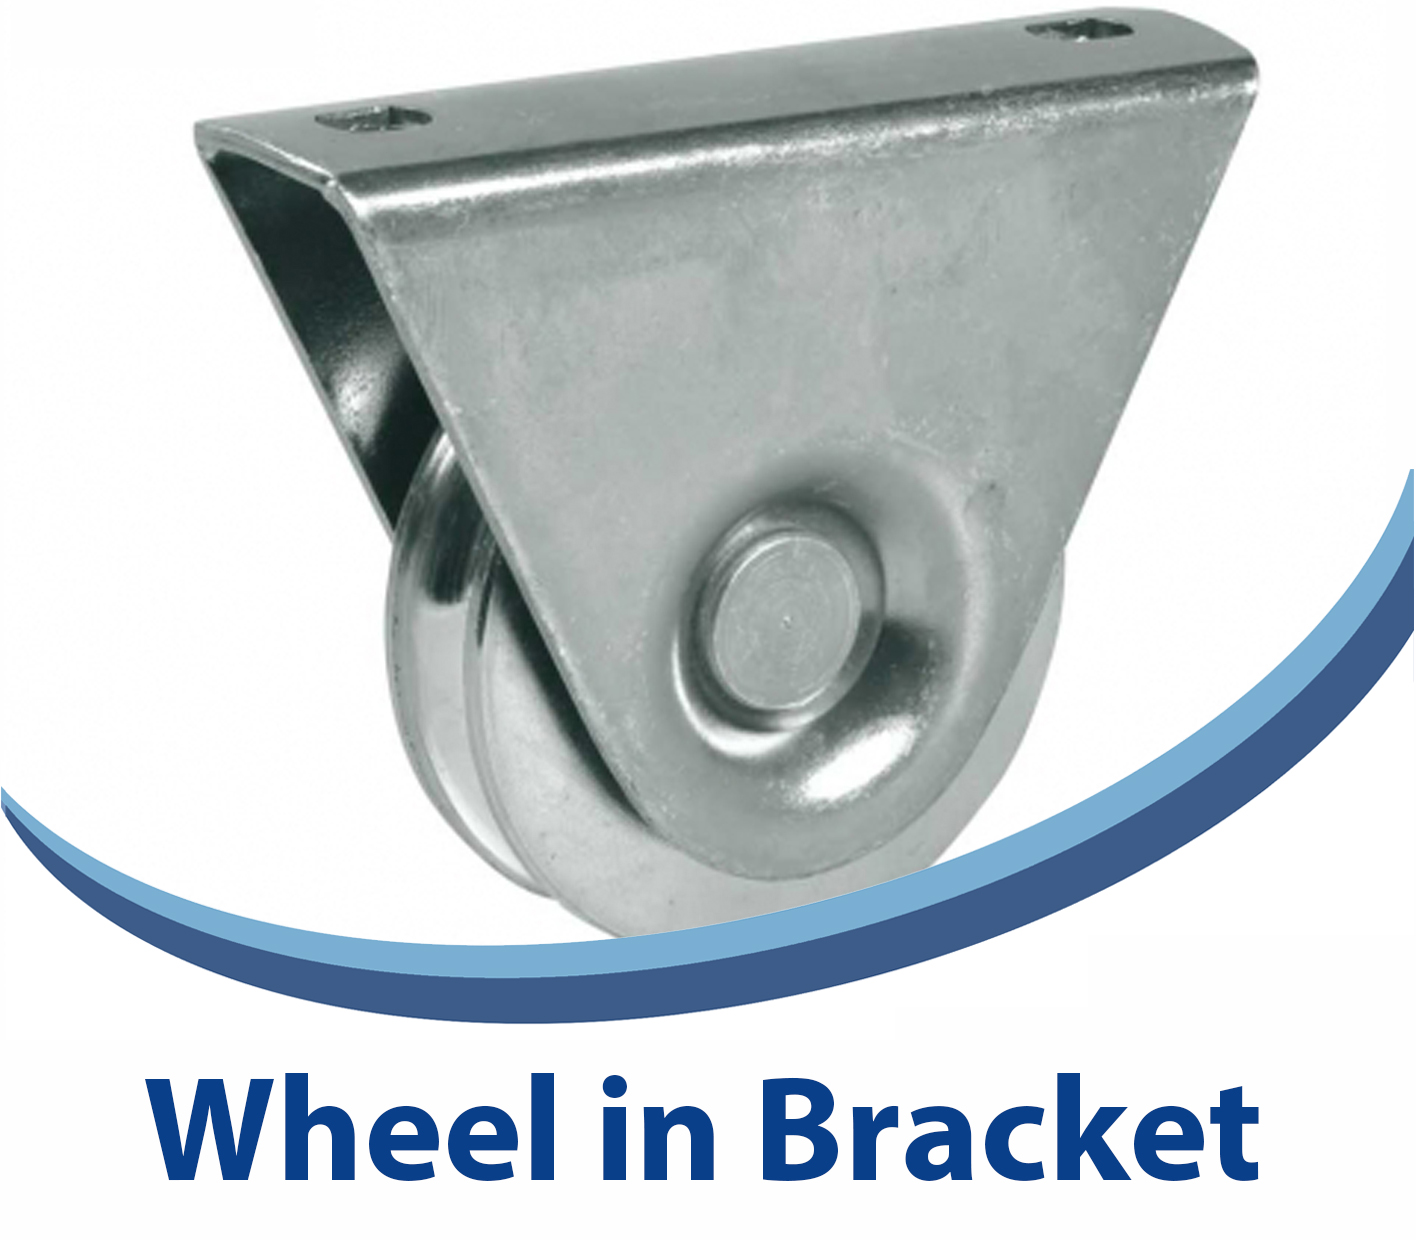 Wheel in Bracket